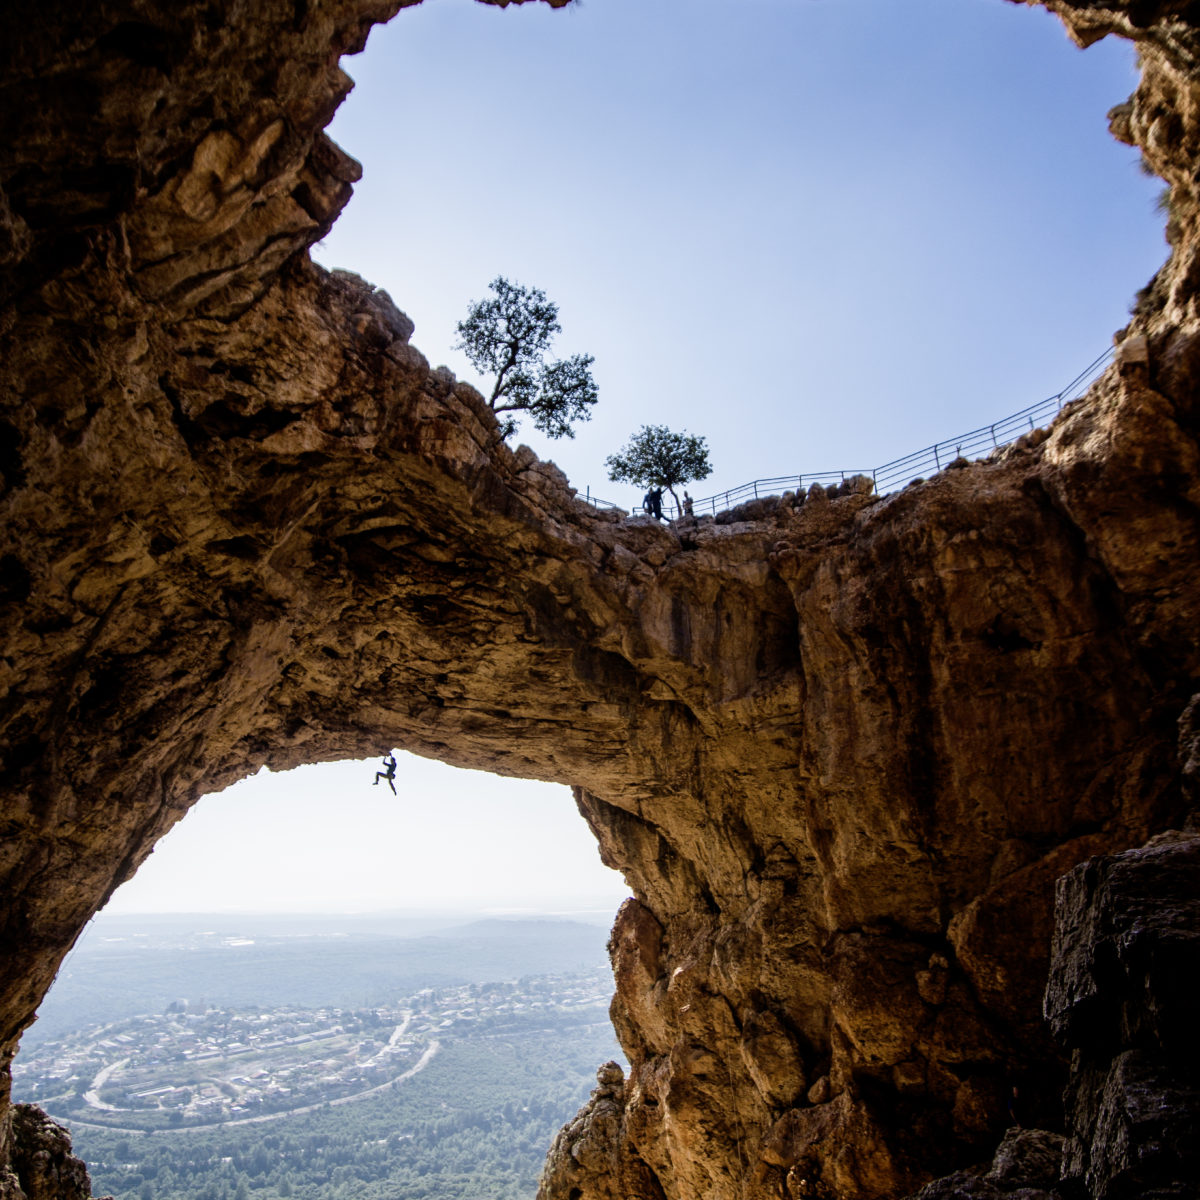 Israel. Keshet Cave. Ofer Blutrich in Icarus 8a© Claudia Ziegler